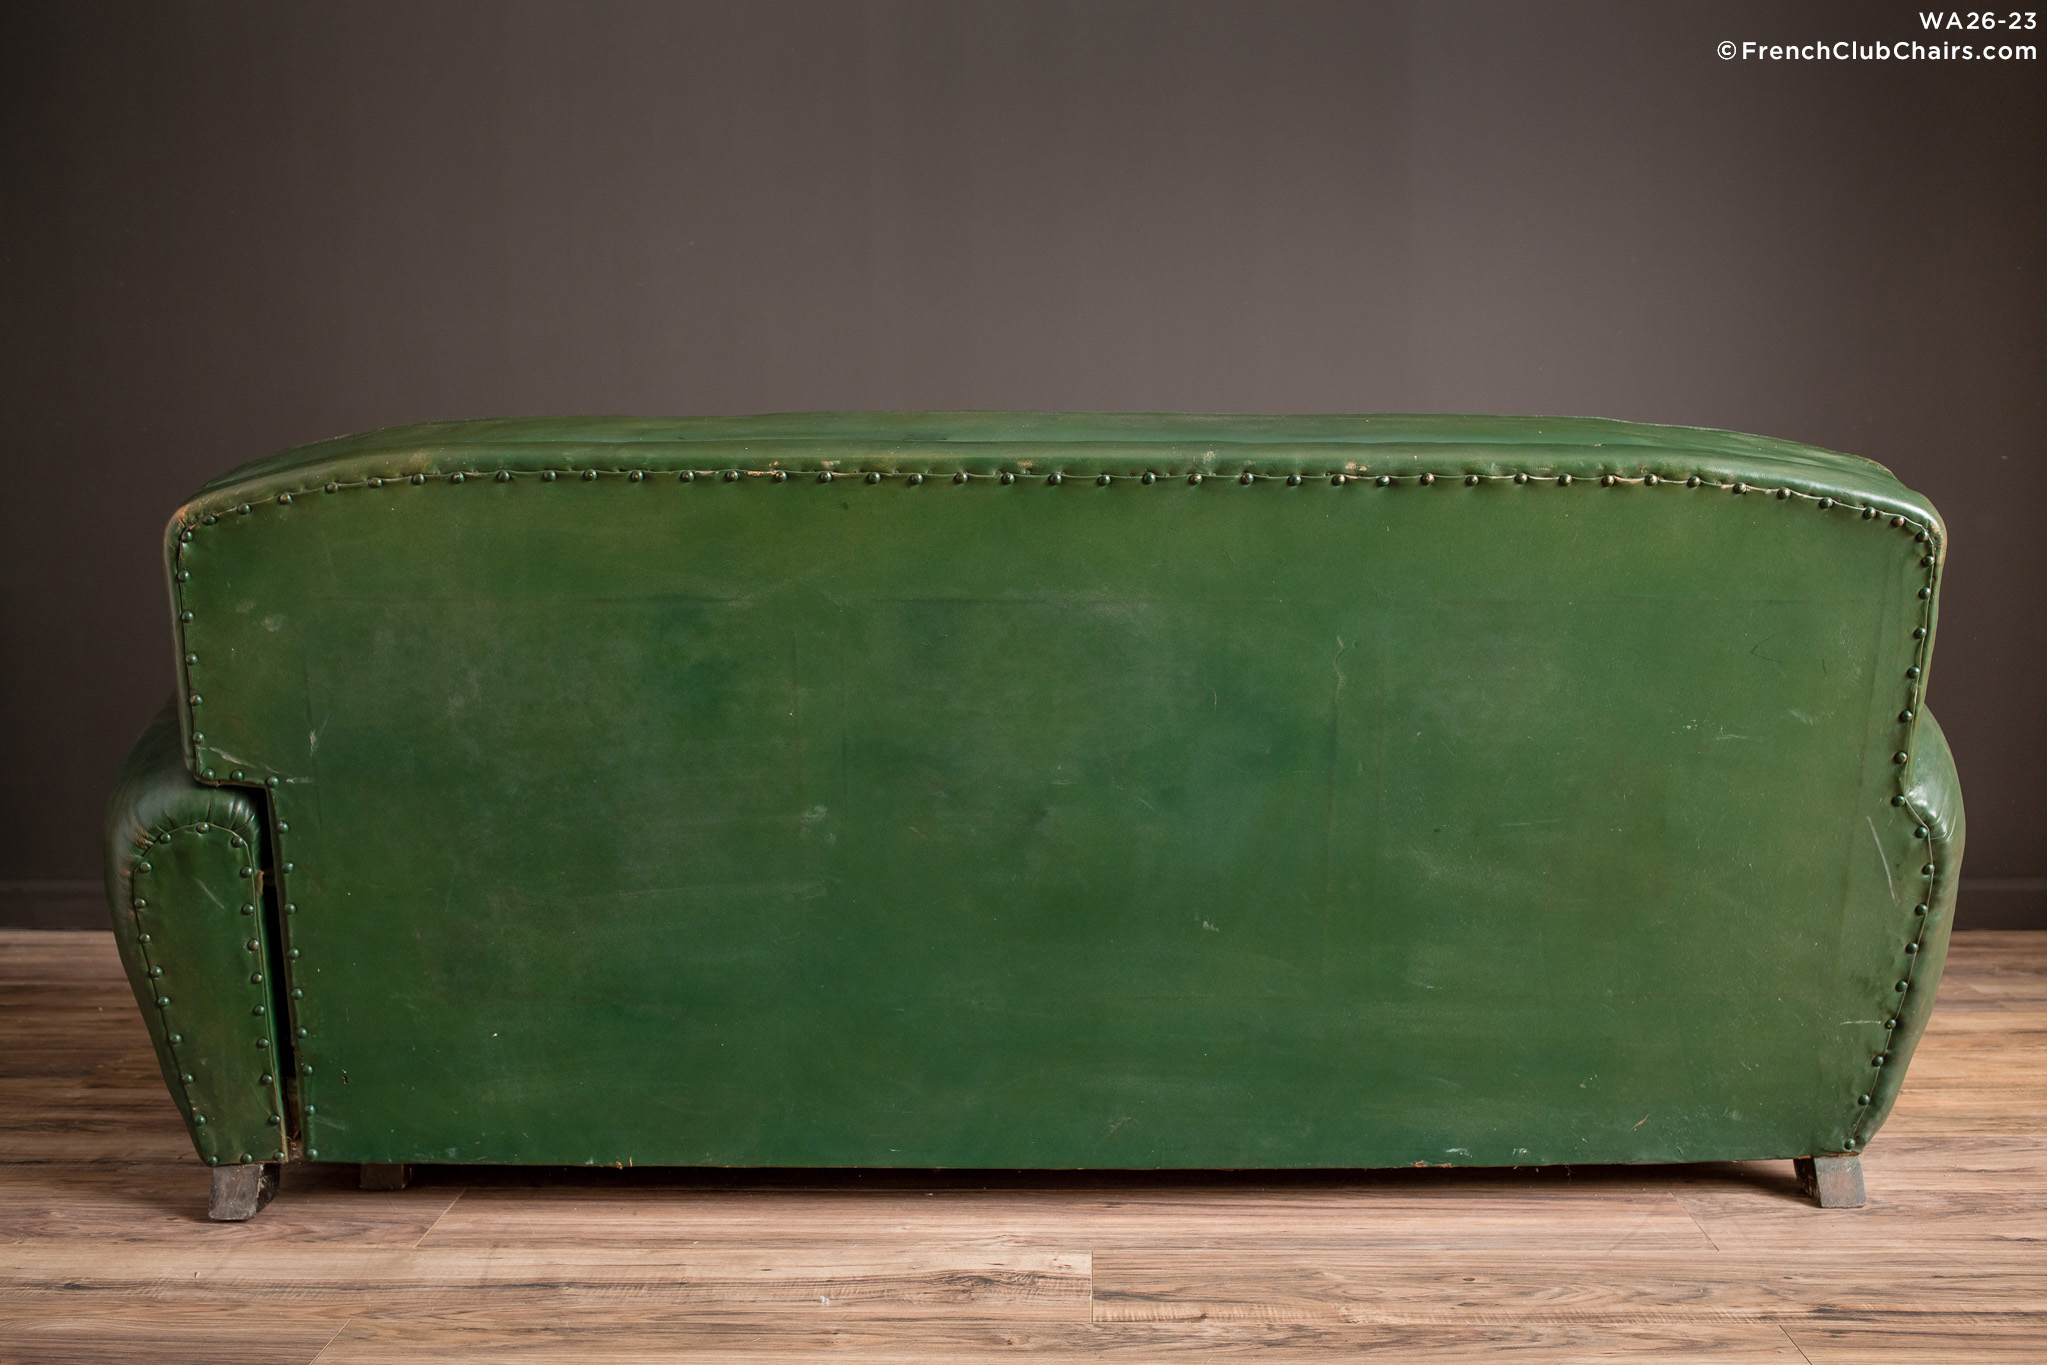 WA_26-23_Chairs_Green_Salon_Library-couch_R_2BK-v01-williams-antiks-leather-french-club-chair-wa_fcccom